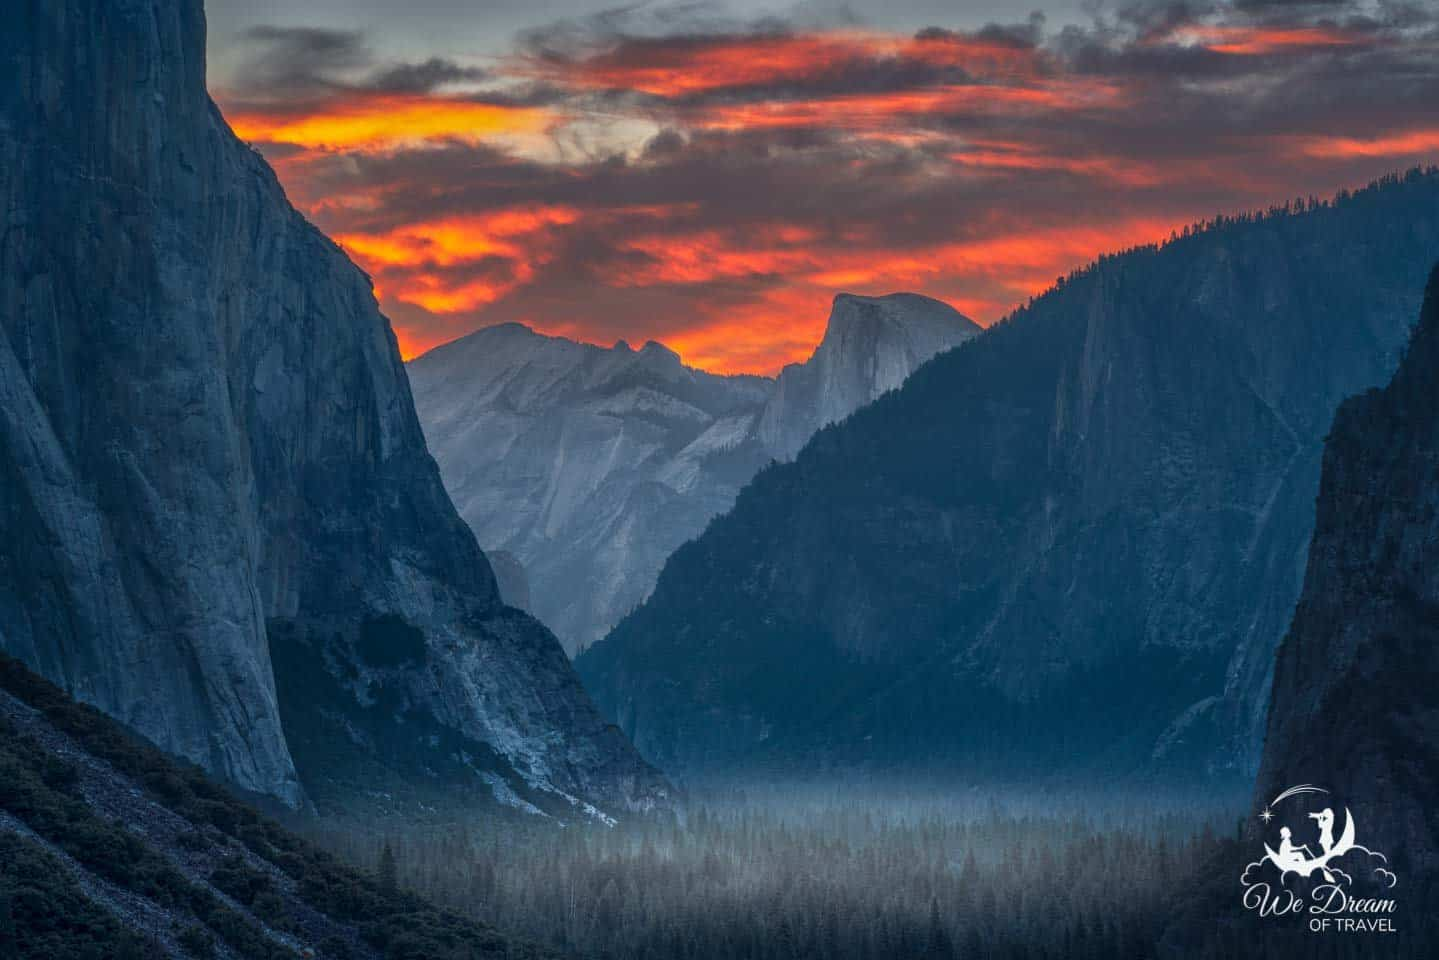 Low clouds burn fiery red on the horizon during sunrise on Day 1 in Yosemite National Park.